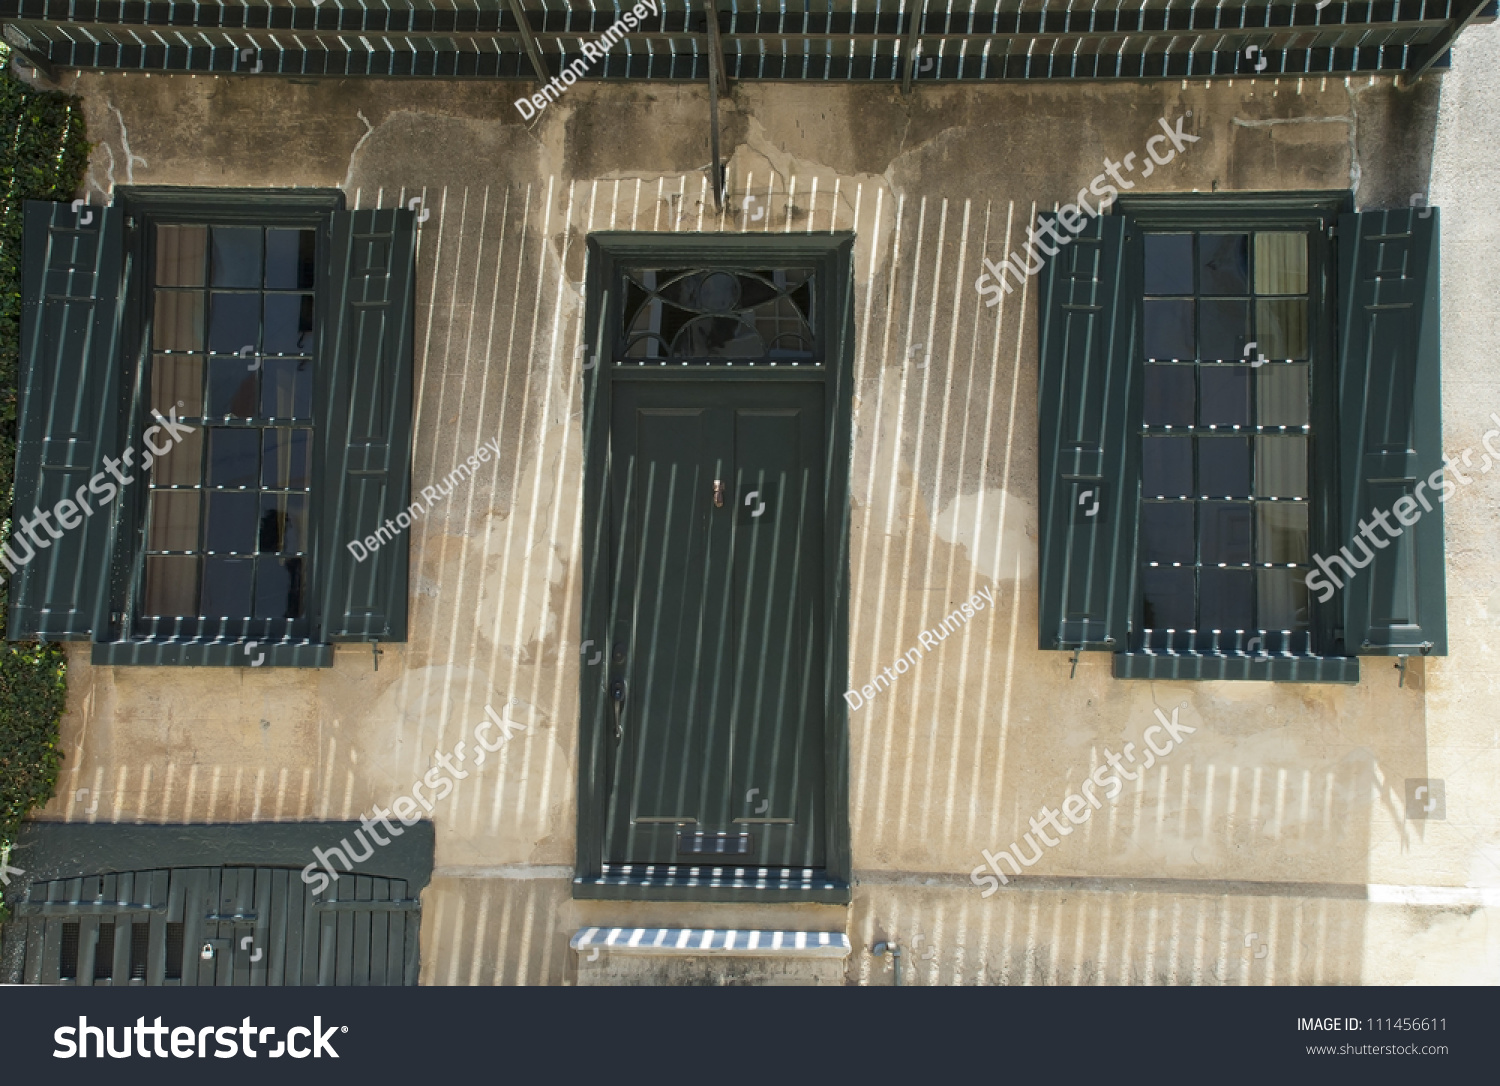 The Iron Bars Of A Balcony Cast A Grilled Patterned Shadow Over The Front Door Of & Grilled Door \u0026 The Grilled Door Protect Any Thing In House Stock ... Pezcame.Com